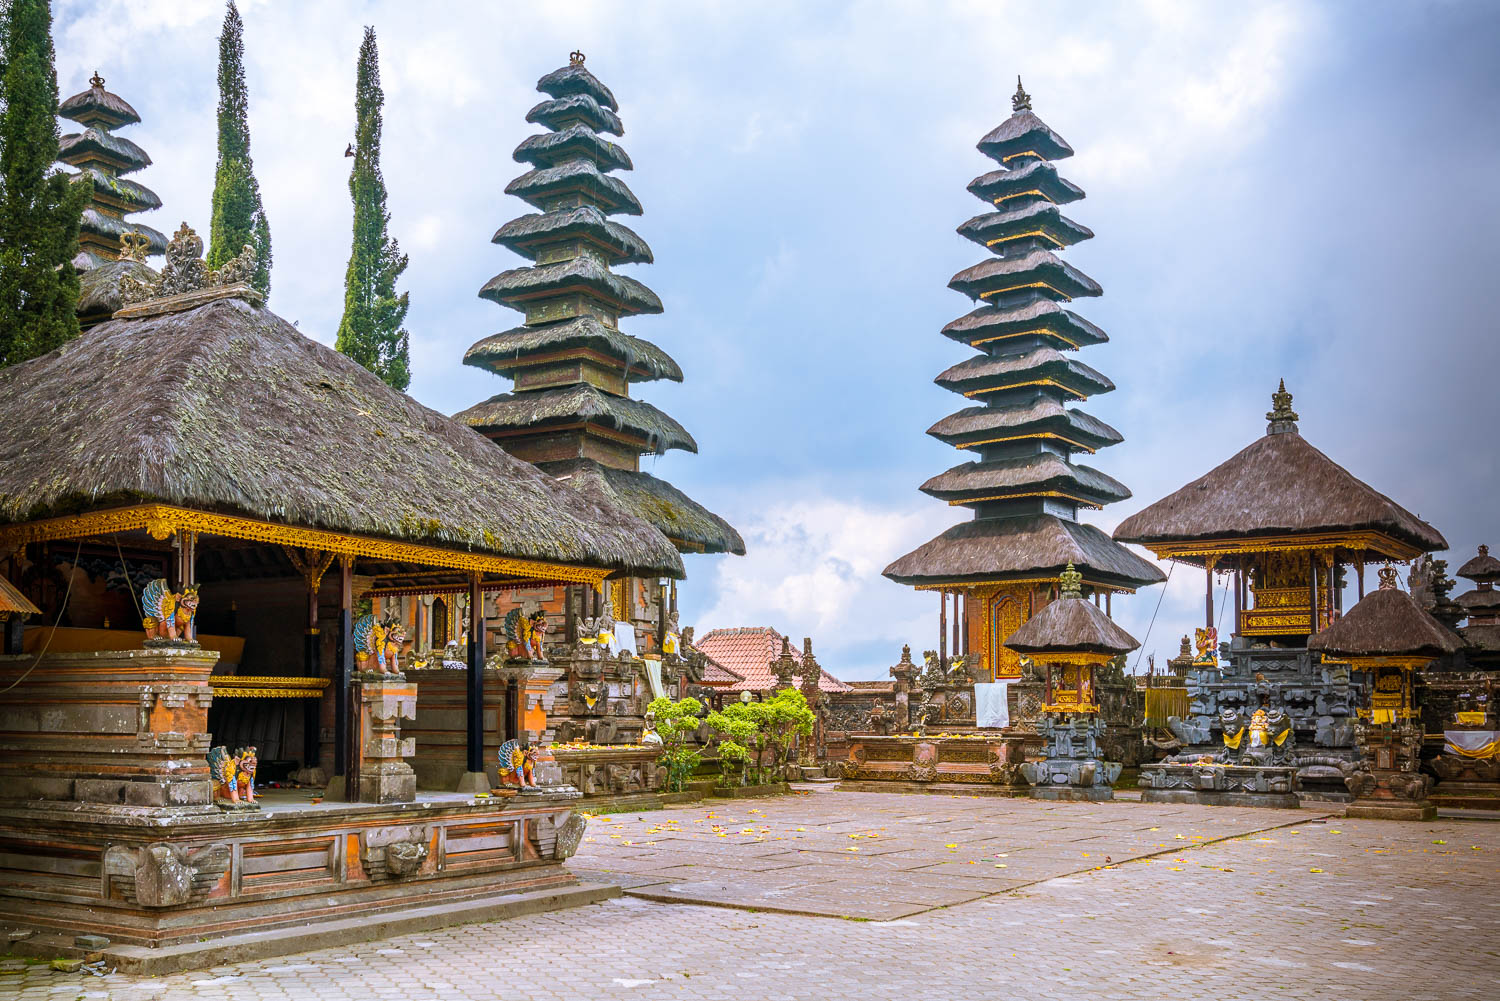 Ulun Danu Batur features many of the typical architectures of Balinese temples.